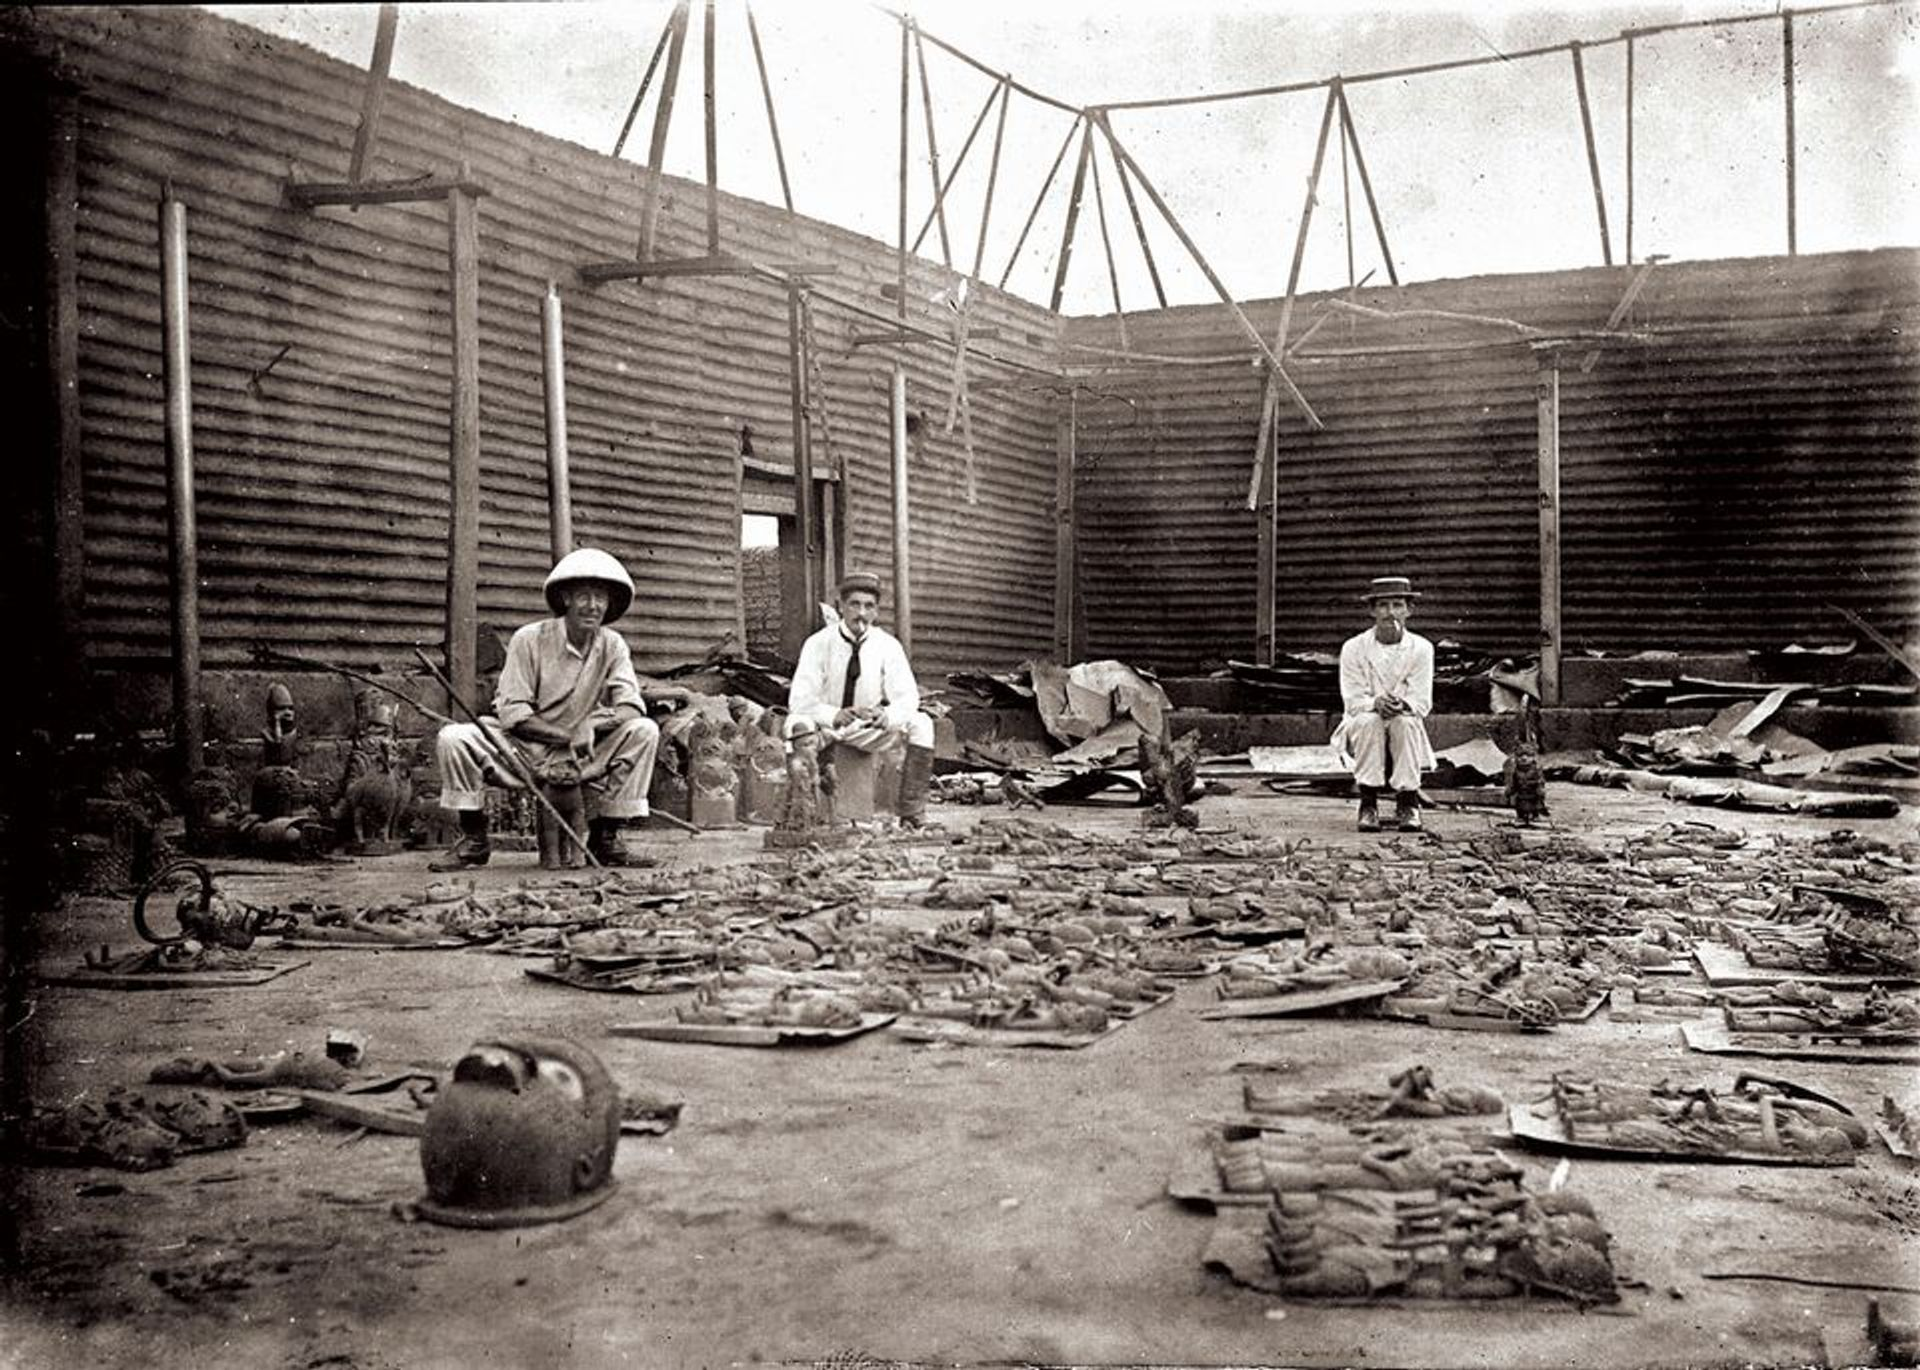 Nigeria has filed restitution claims for objects looted in the siege of Benin City in 1897 Reginald Kerr Granville